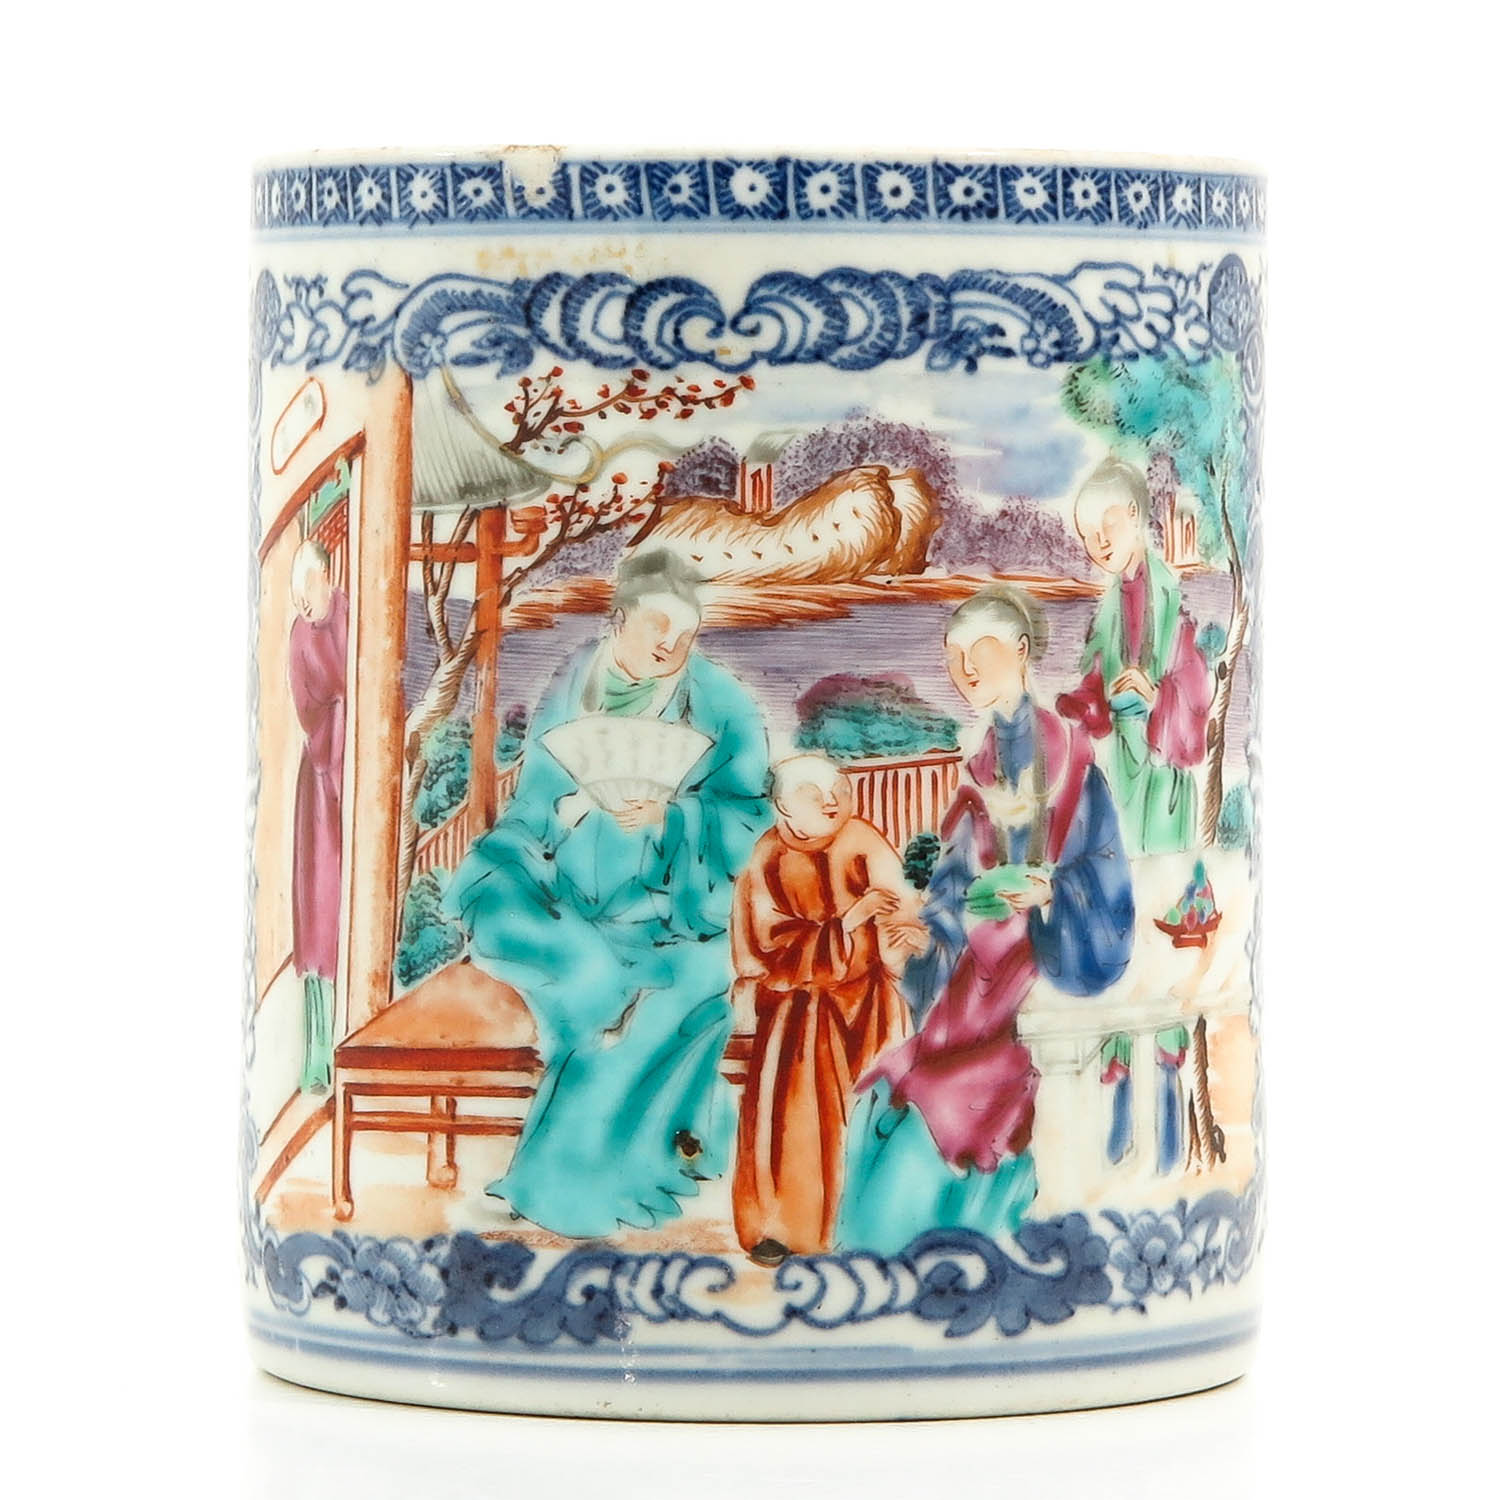 A Polychrome Decor Mug - Image 4 of 10